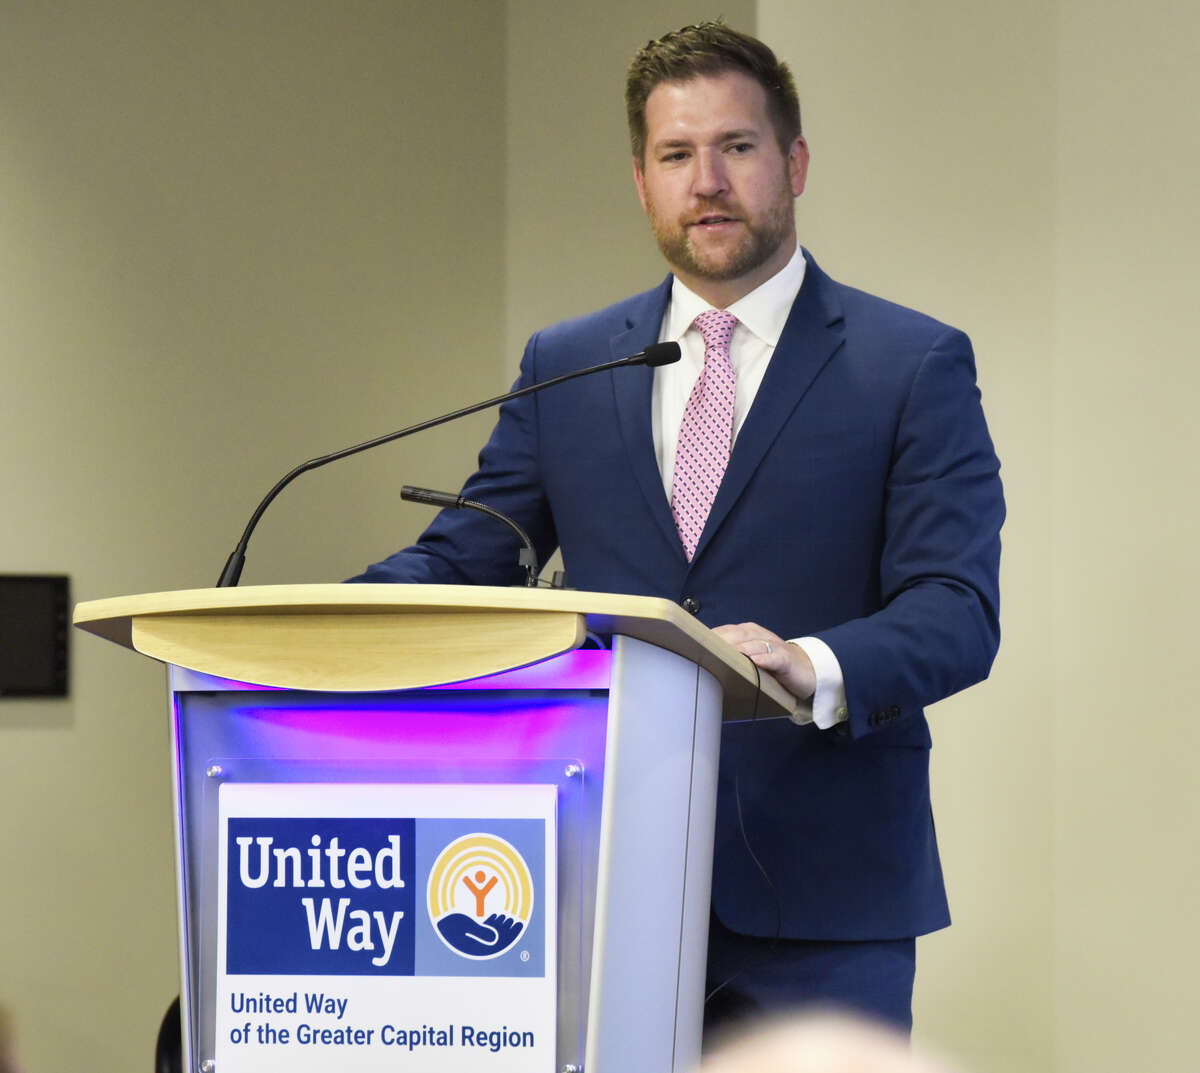 Peter Gannon, president and CEO of the United Way of the Greater Capital Region, speaks at the Hearst Media Center on Wednesday, Oct. 16, 2019, in Colonie, N.Y. (Paul Buckowski/Times Union)